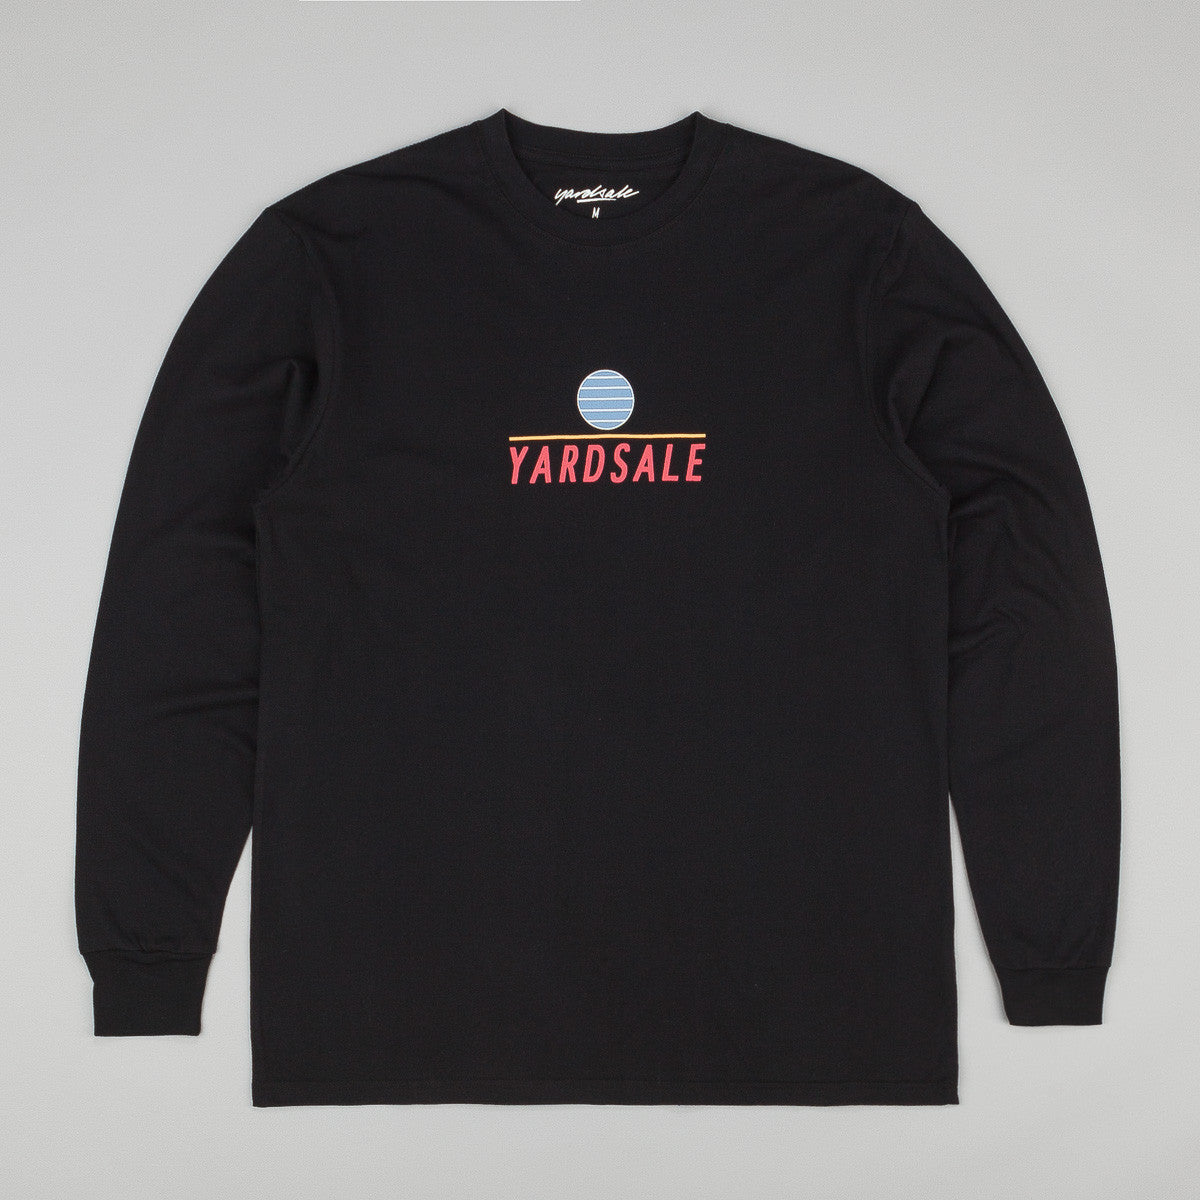 Yardsale Long-Sleeve T-Shirt